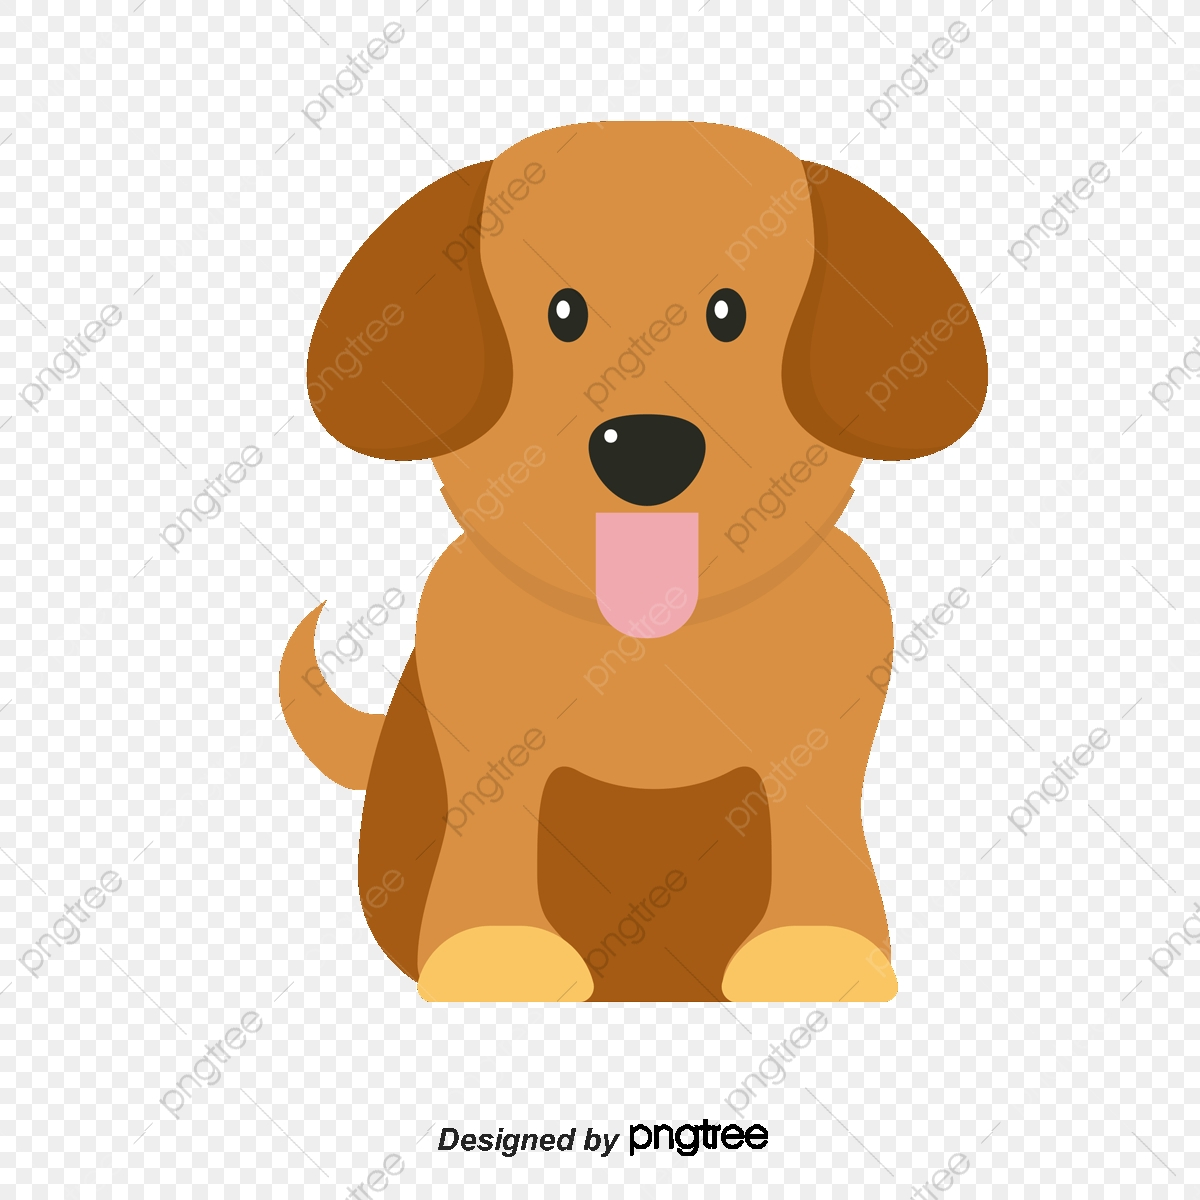 Droopy Dog Clipart for printable to